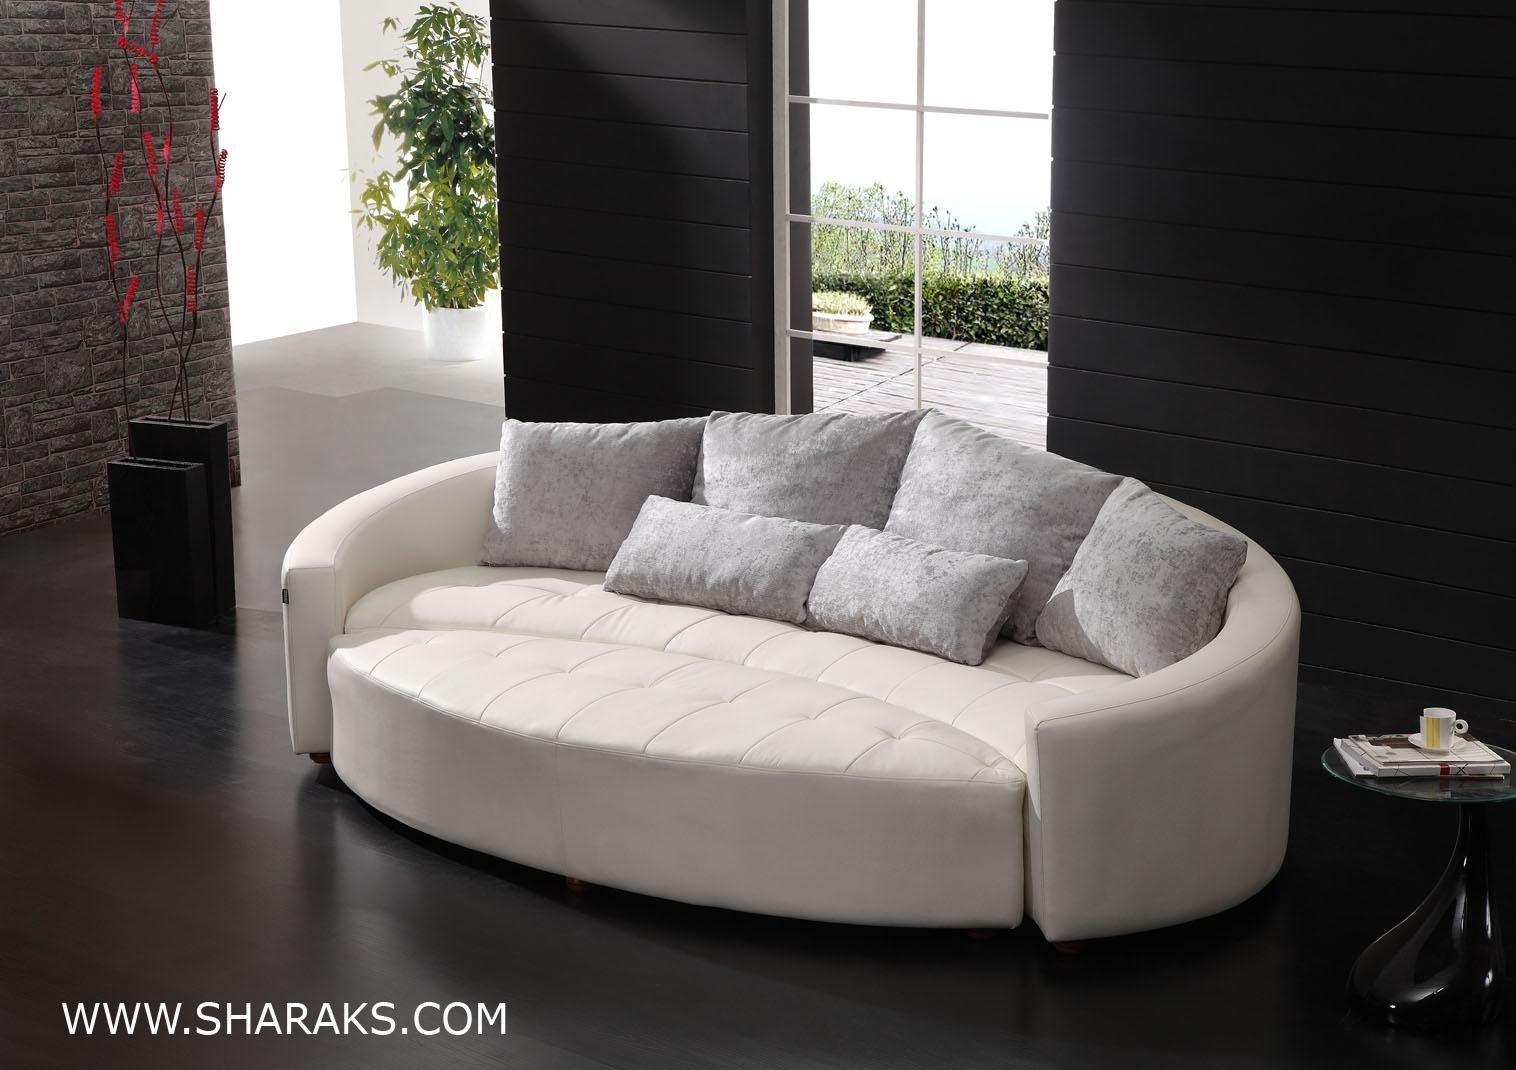 Sofas Center : Stupendous Circle Sofa Chair Pictures Design Nice Within Circular Sofa Chairs (View 7 of 20)